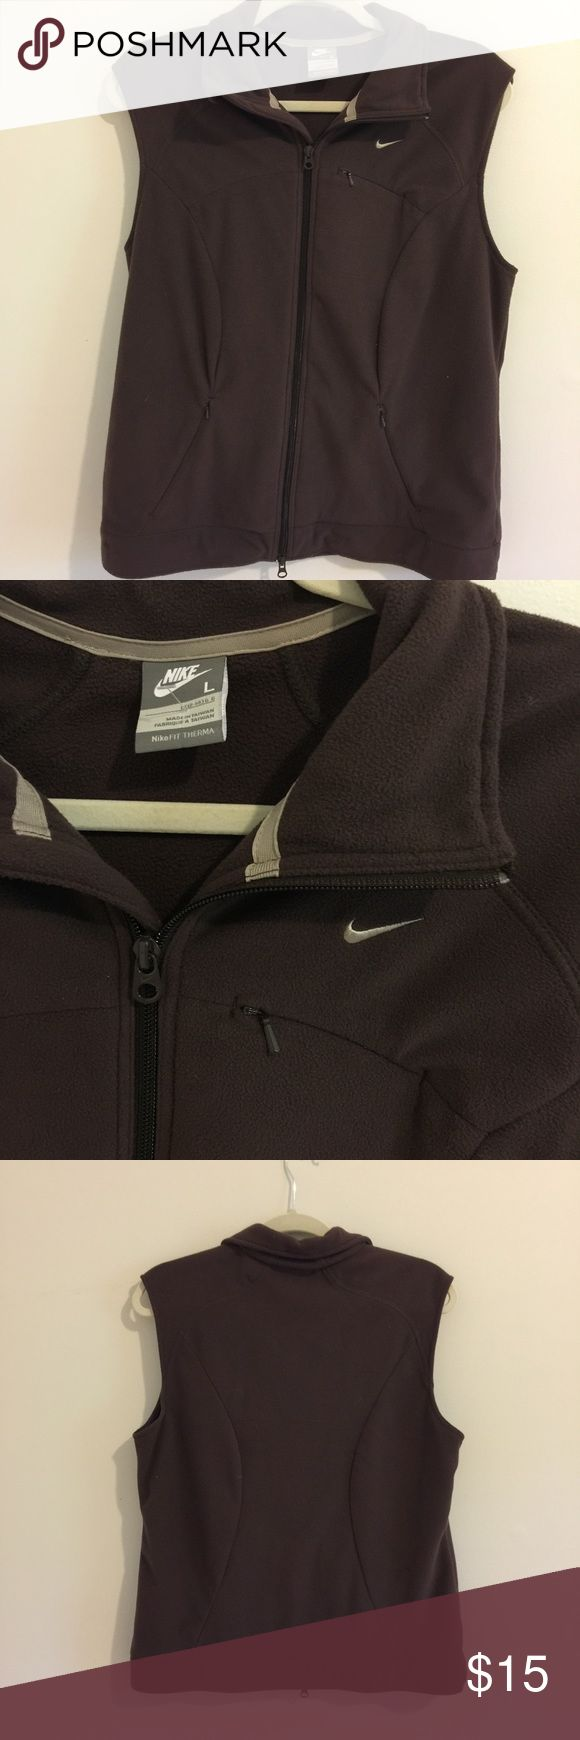 💥CLEARANCE💥Nike full zip vest with pockets! Brown Nike Vest Women's Size Large! Full zip with zipper pockets! Great condition!! Clearance price is firm! Nike Jackets & Coats Vests